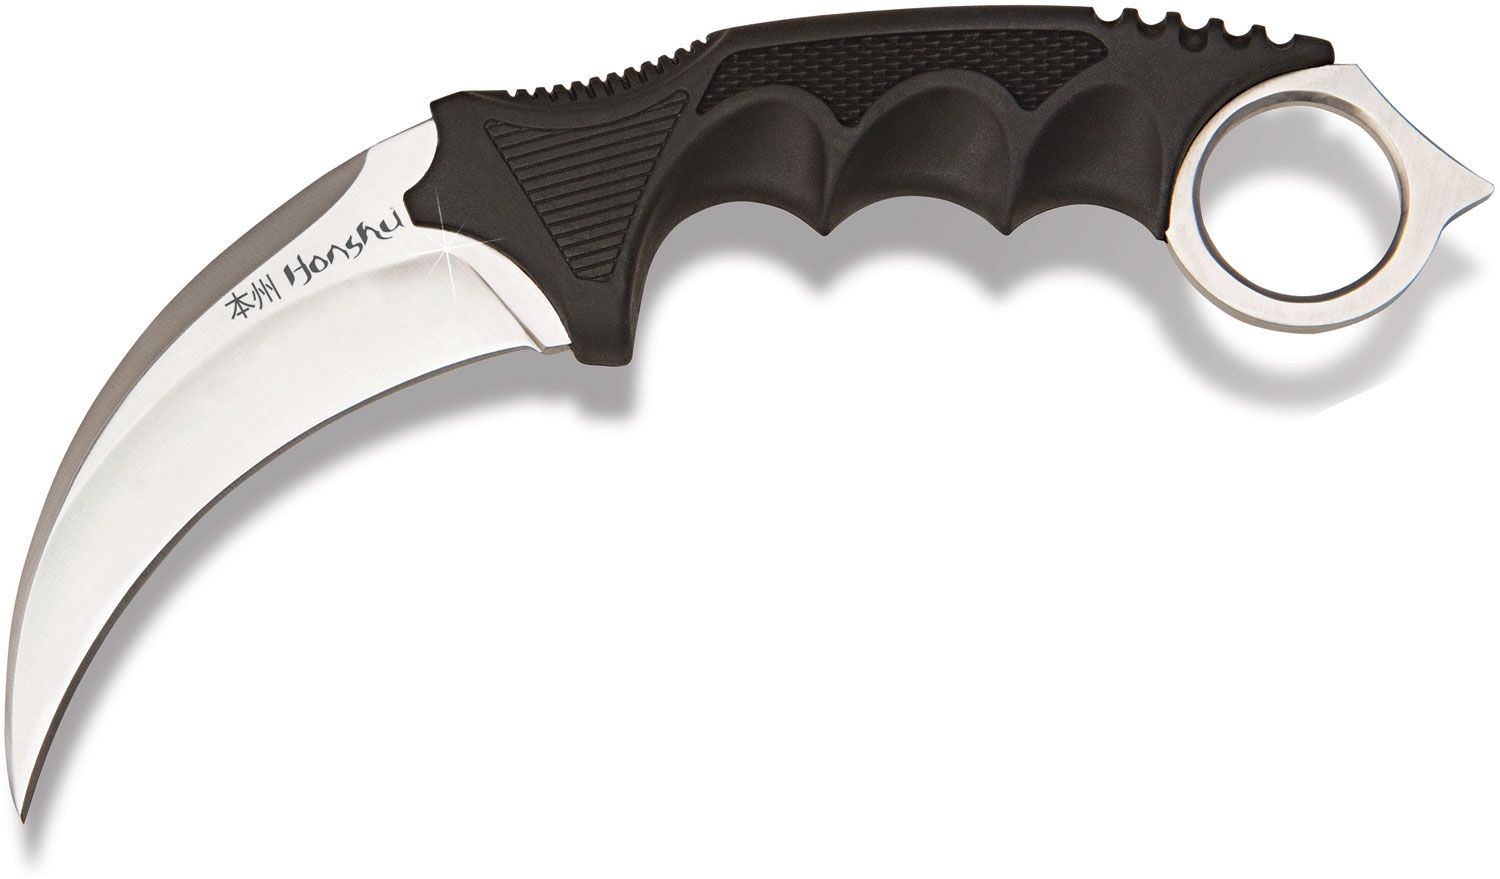 United Cutlery Honshu Karambit 4 inch Satin Blade, Leather Boot Sheath